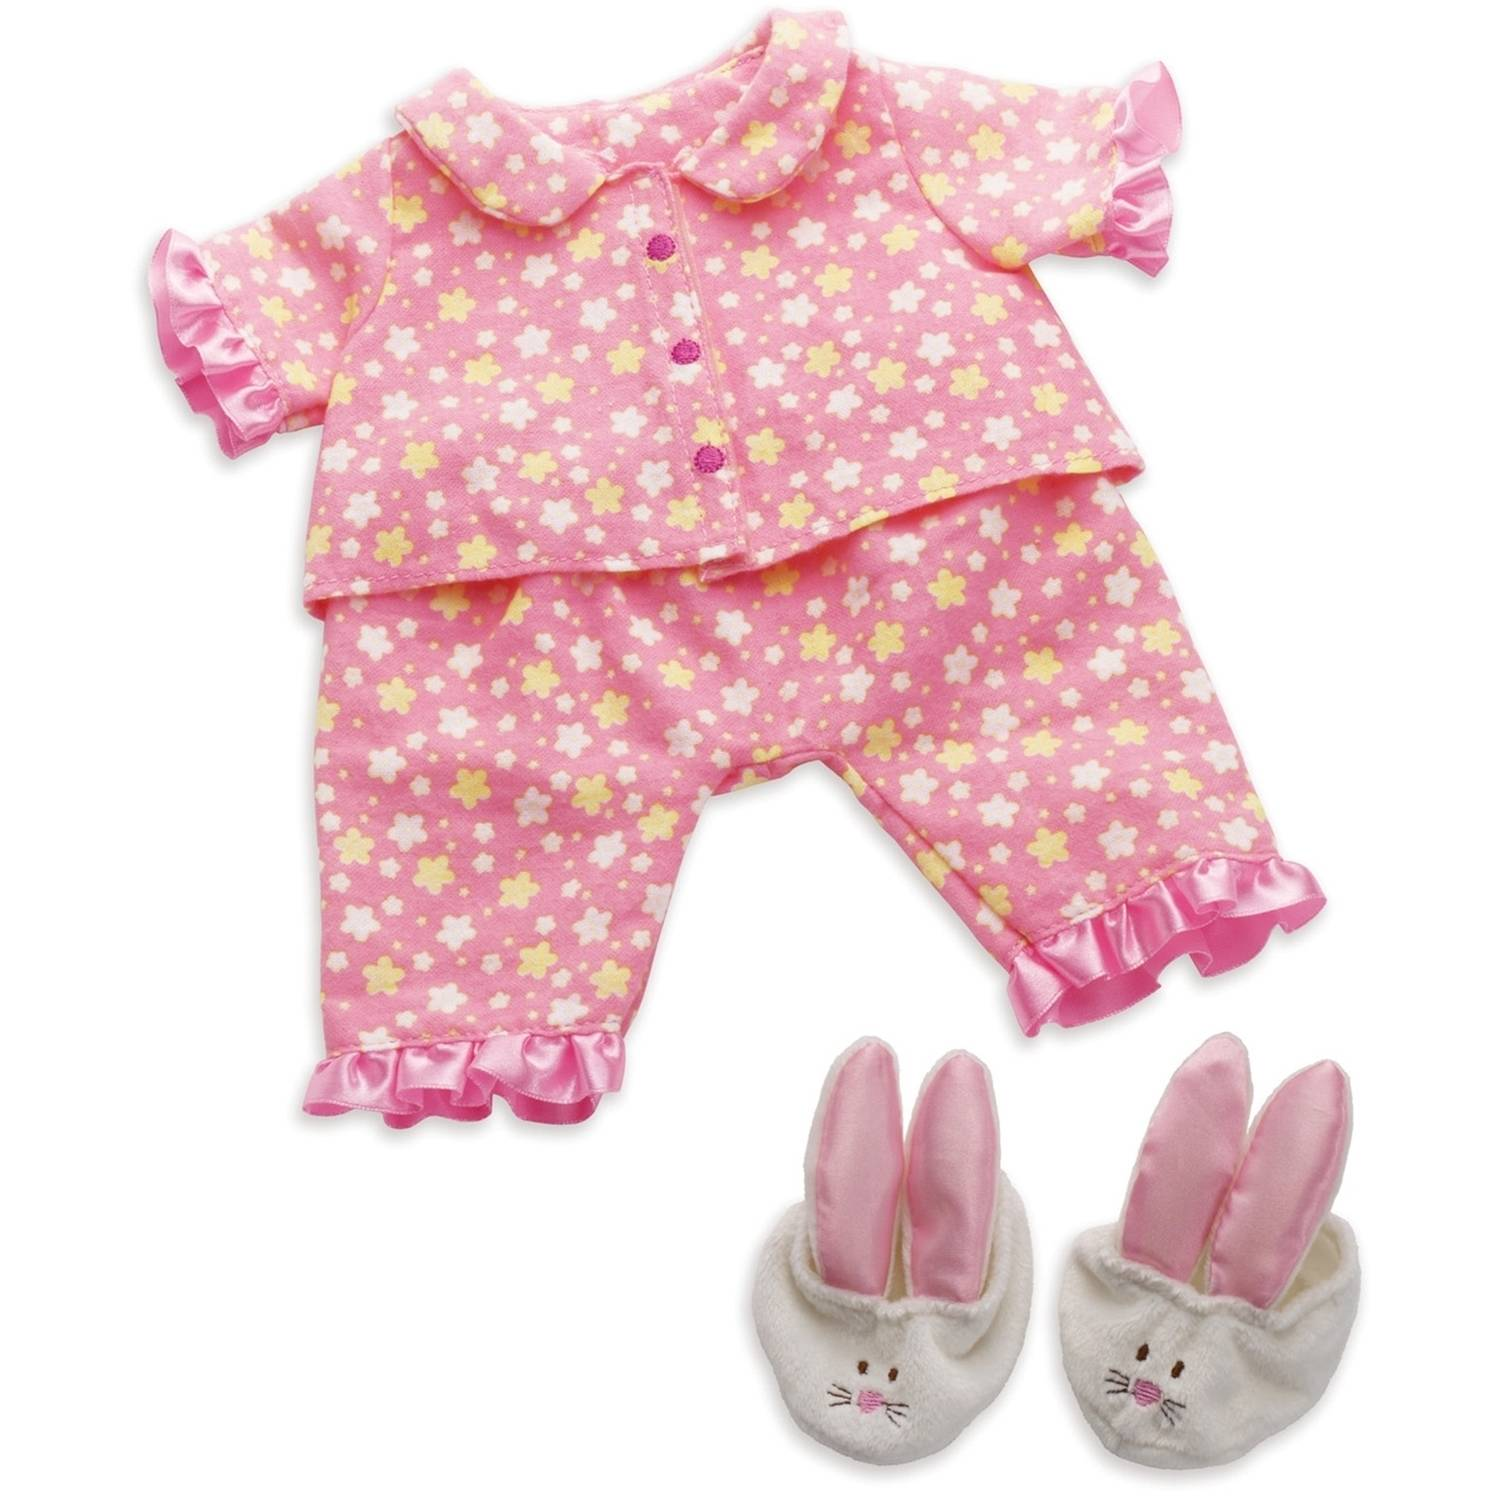 "Manhattan Toy Baby Stella, Goodnight PJ 15"" Baby Doll Outfit"